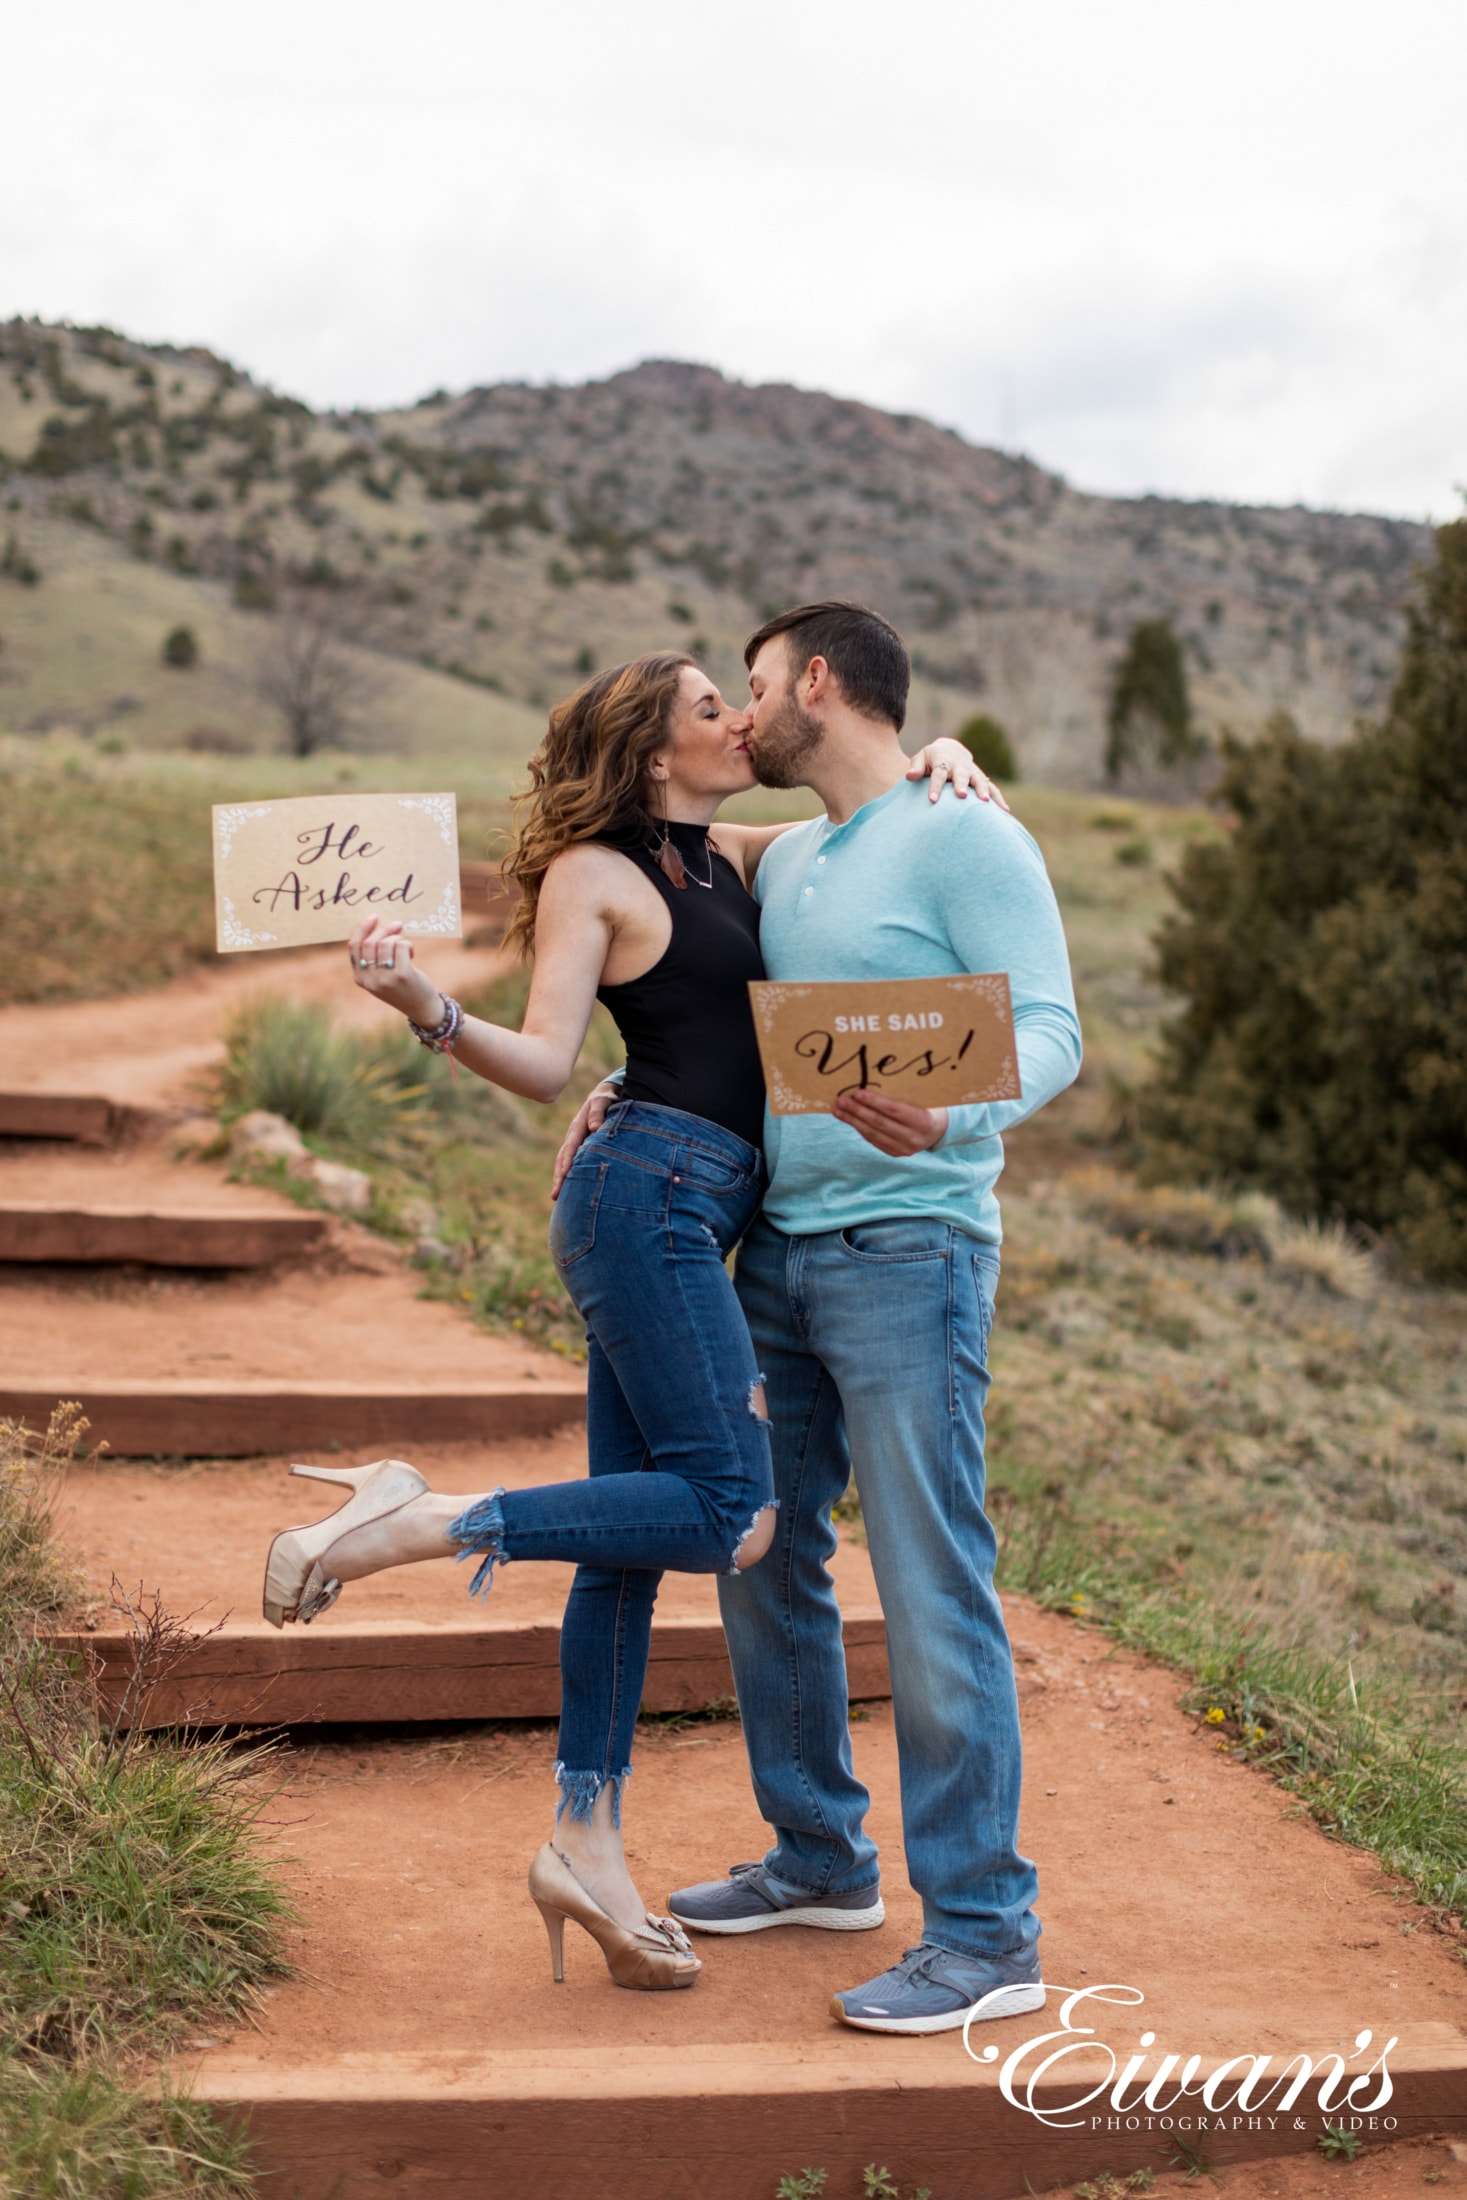 image of an engaged couple holding up signs